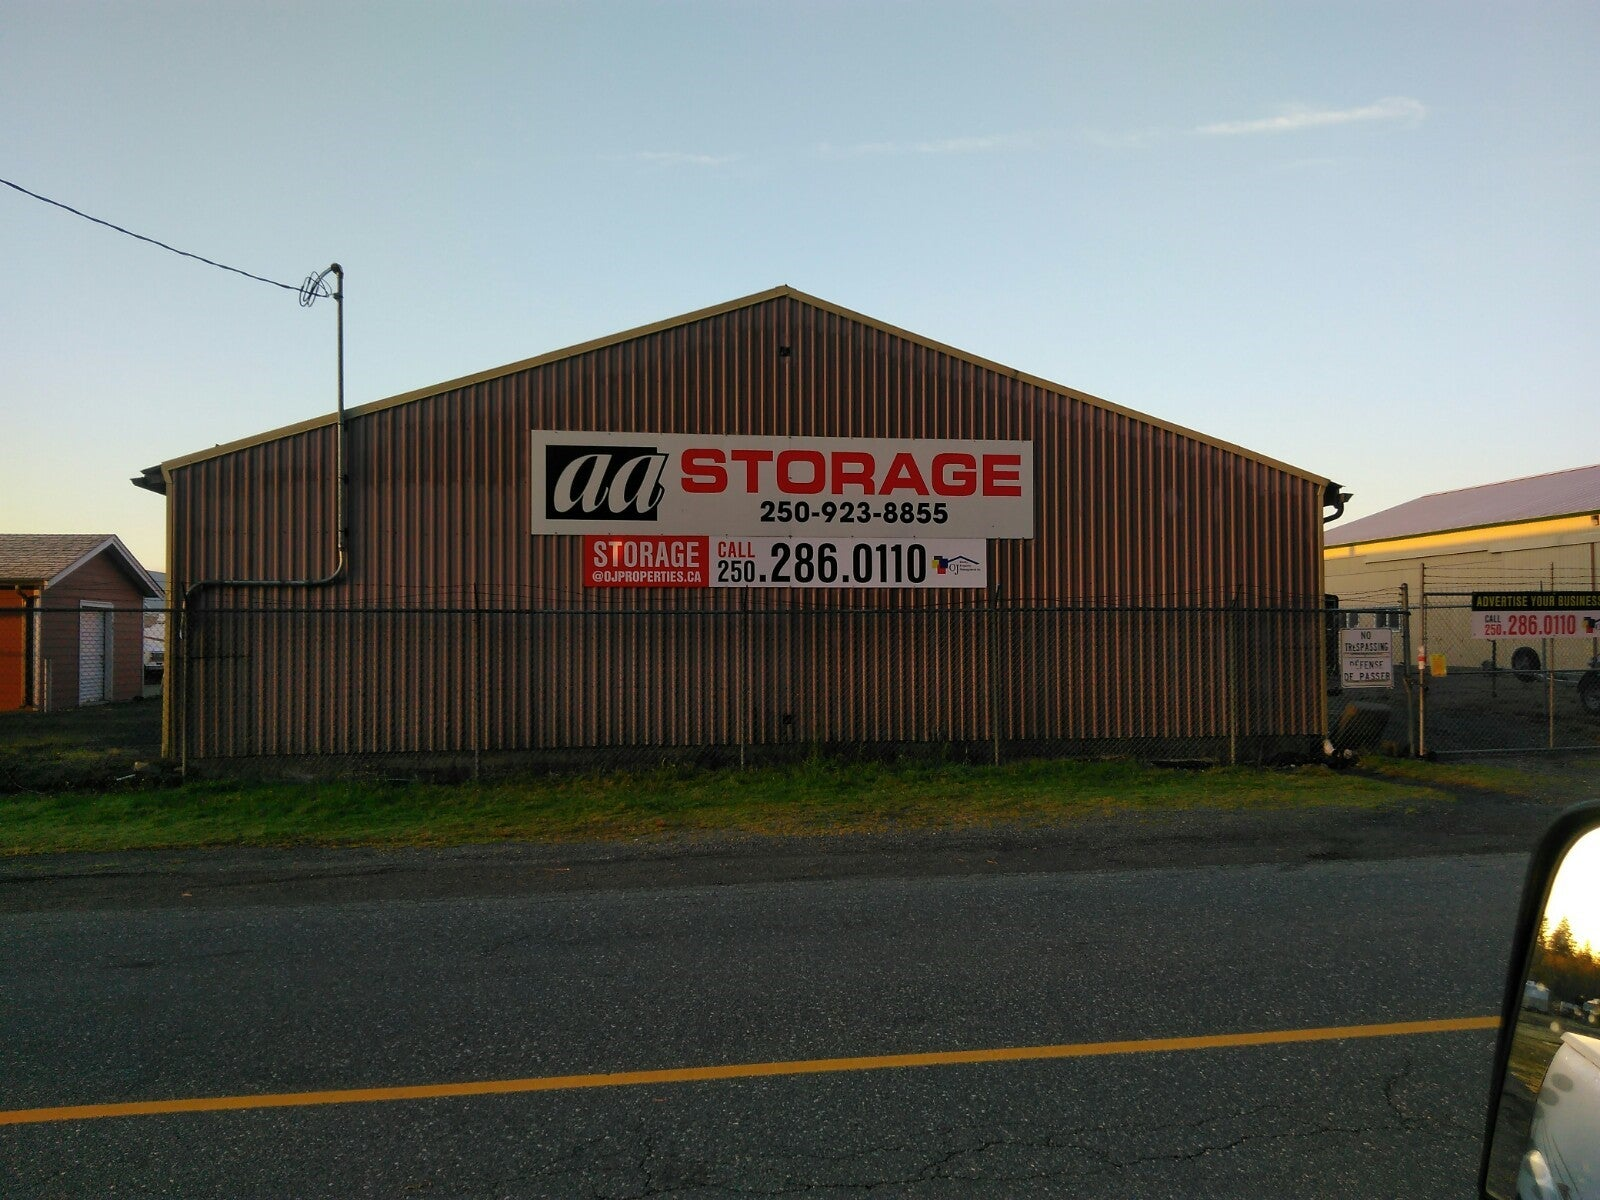 112 AA Storage - 2139 Airside Dr. Campbell River, BC - CR Willow Point COMM for sale(2433622) #1